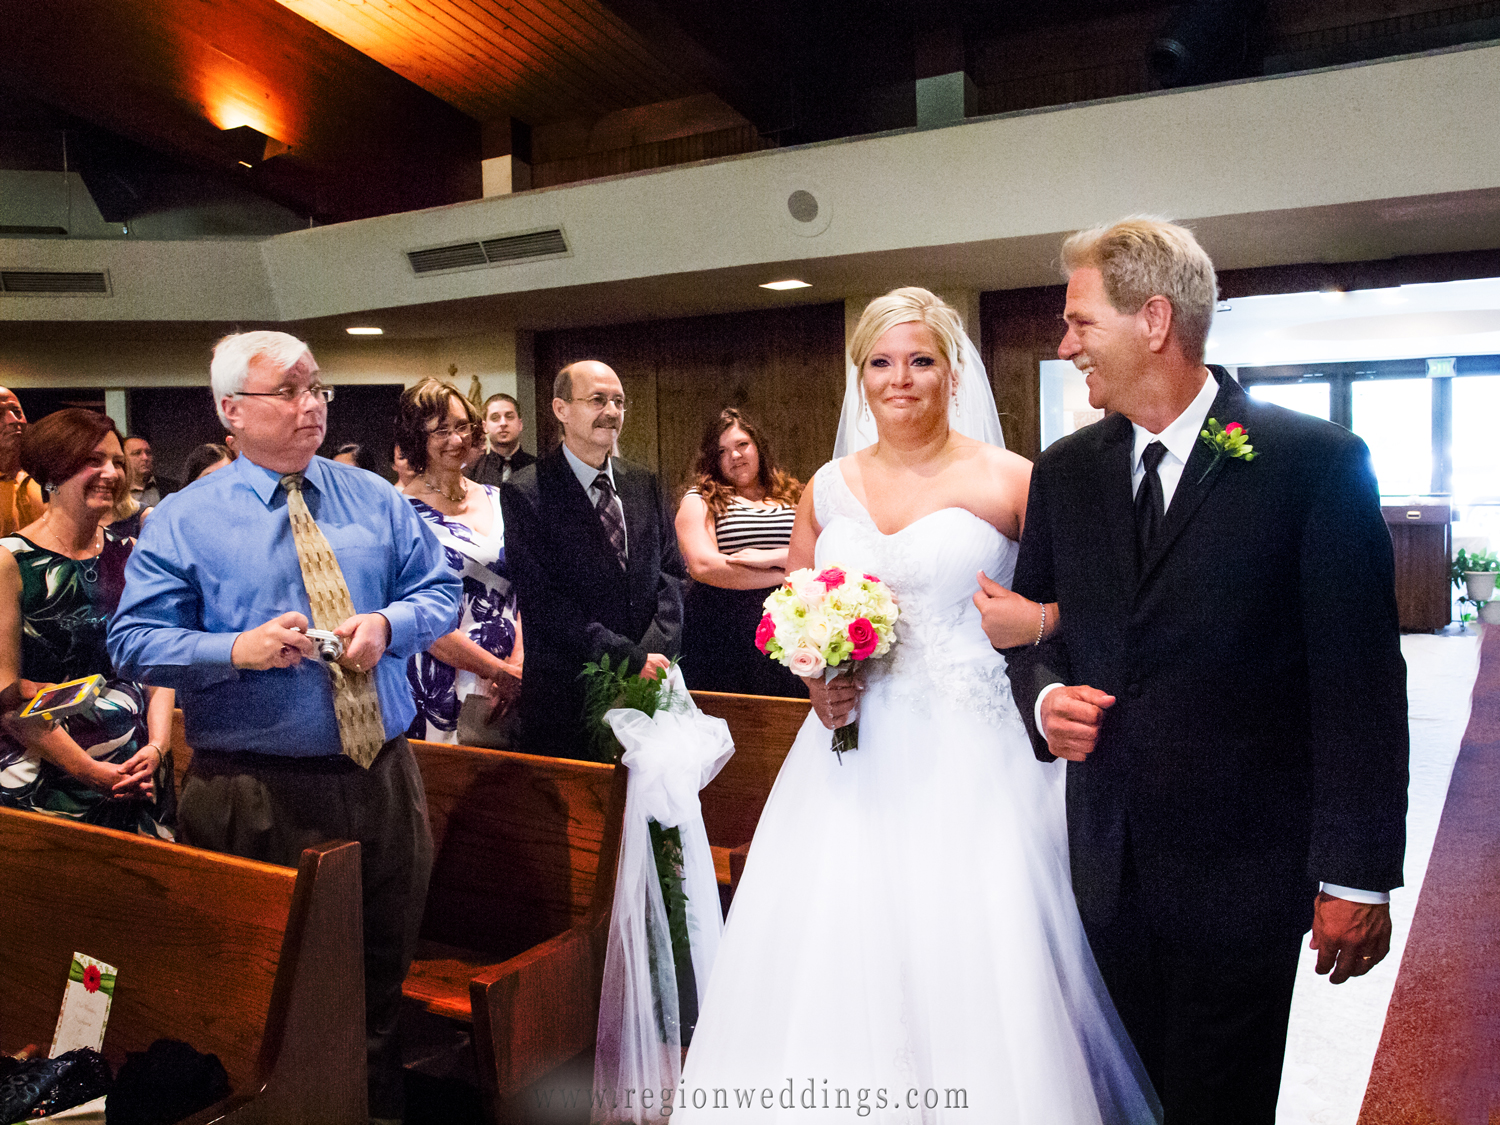 Tears of joy stream down the bride's face as she walks down the aisle with her Dad at St. Elizabeth Ann Seton Church in Valparaiso, Indiana.